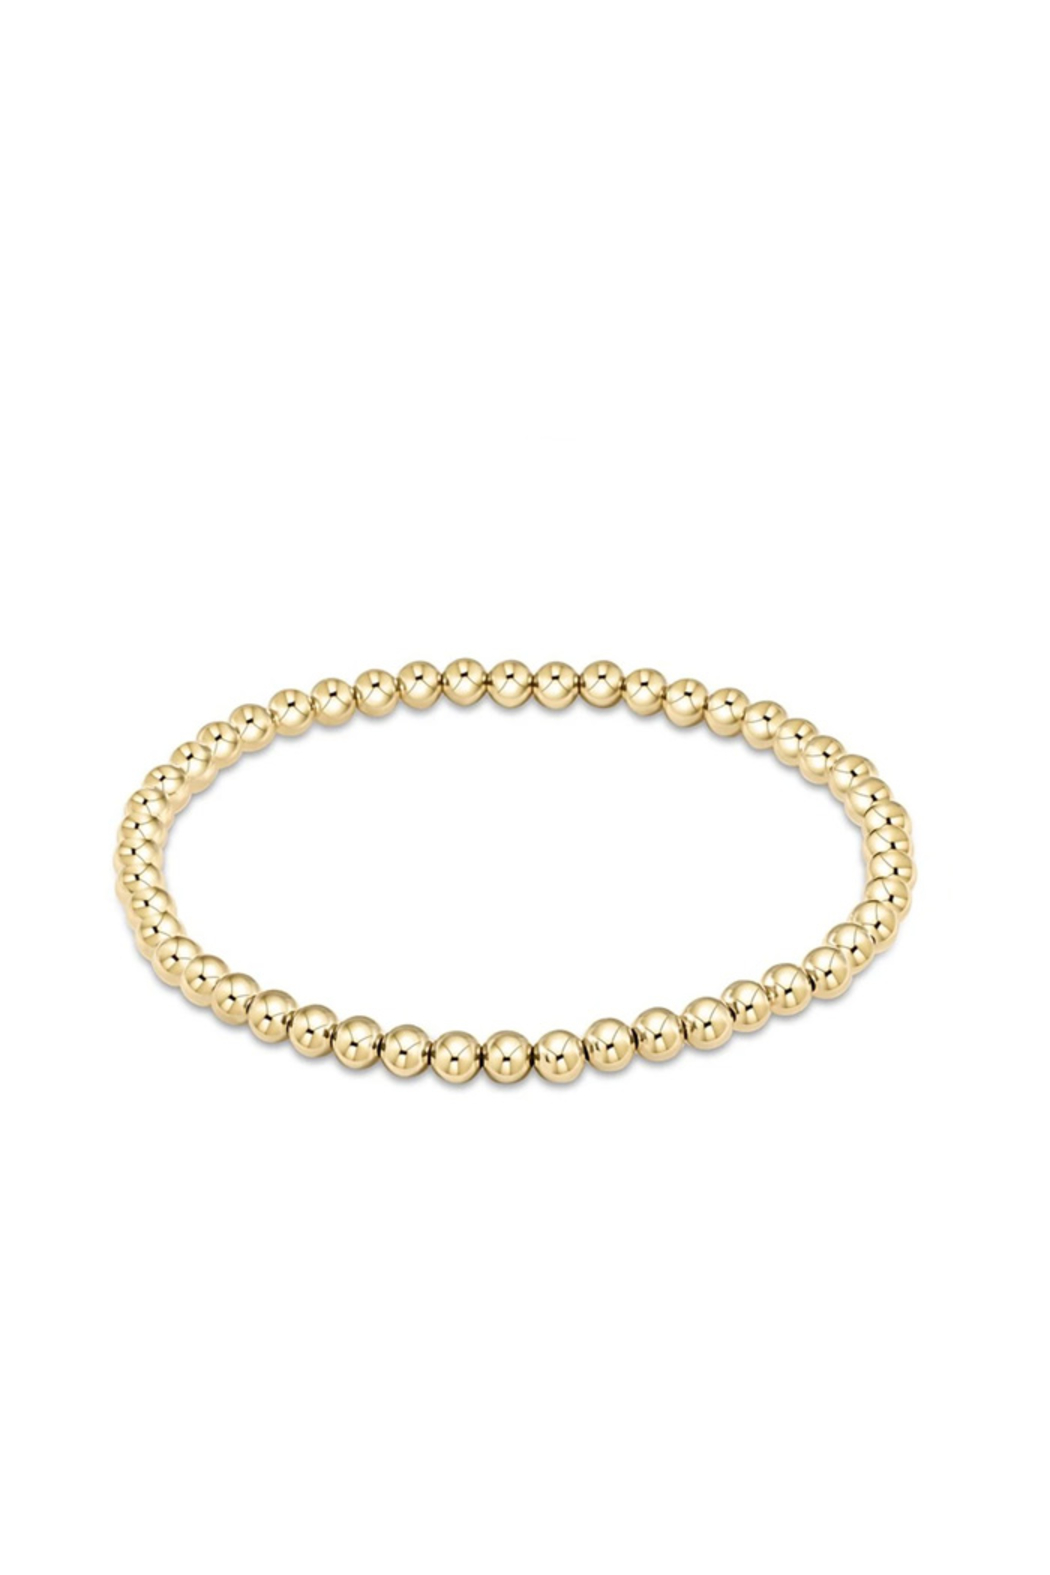 enewton designs Classic Gold 4mm Bead Bracelet - Main Image